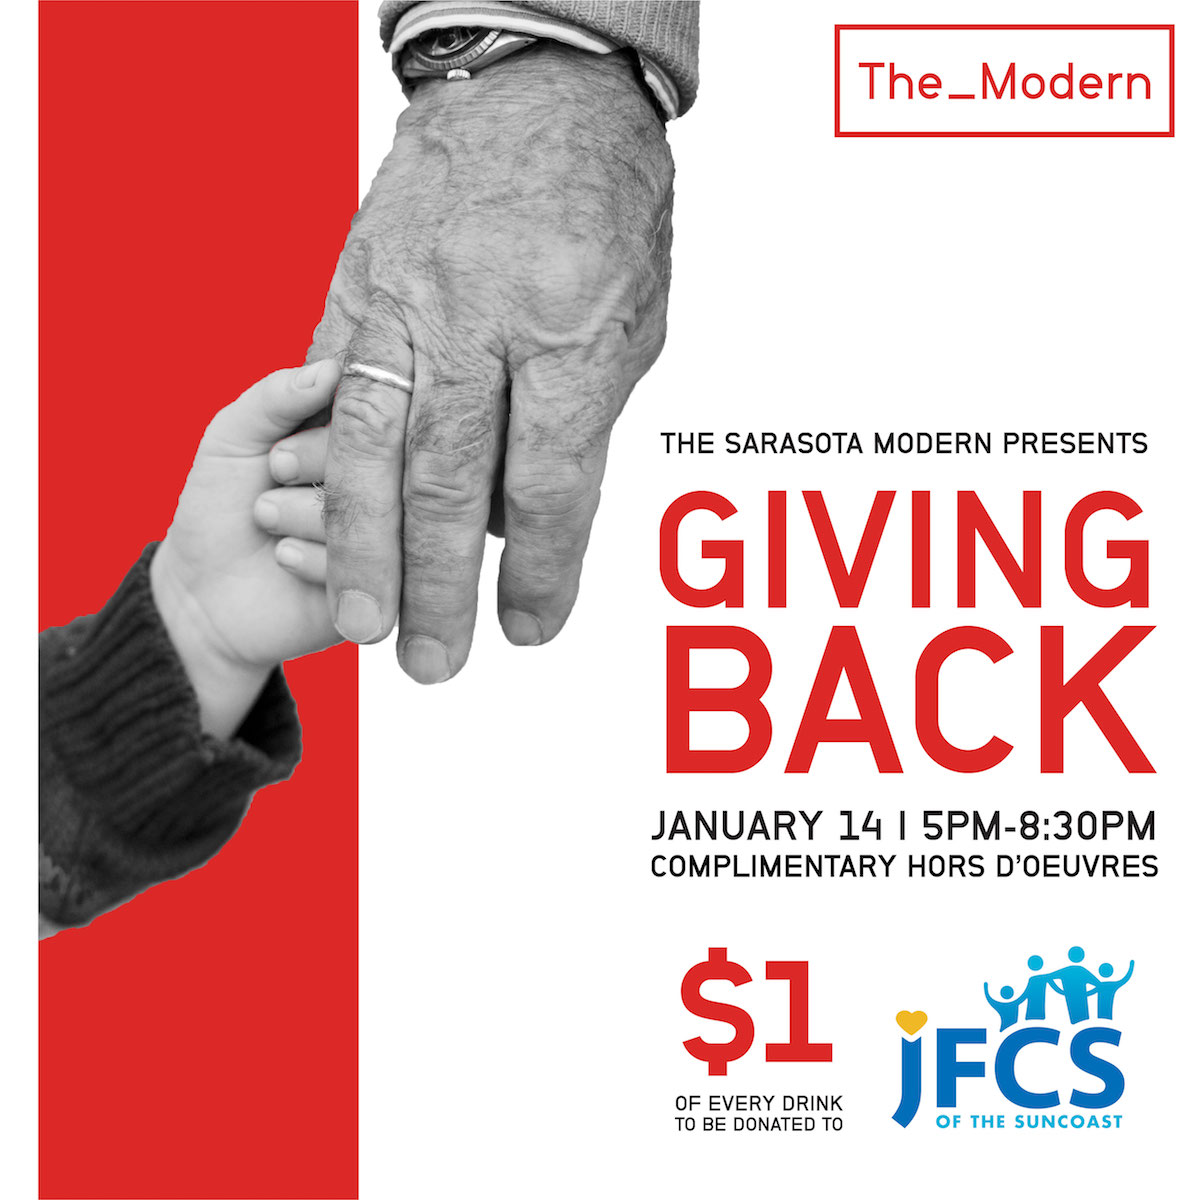 The Sarasota Modern Gives Complimentary Tastings in Benefit of JFCS